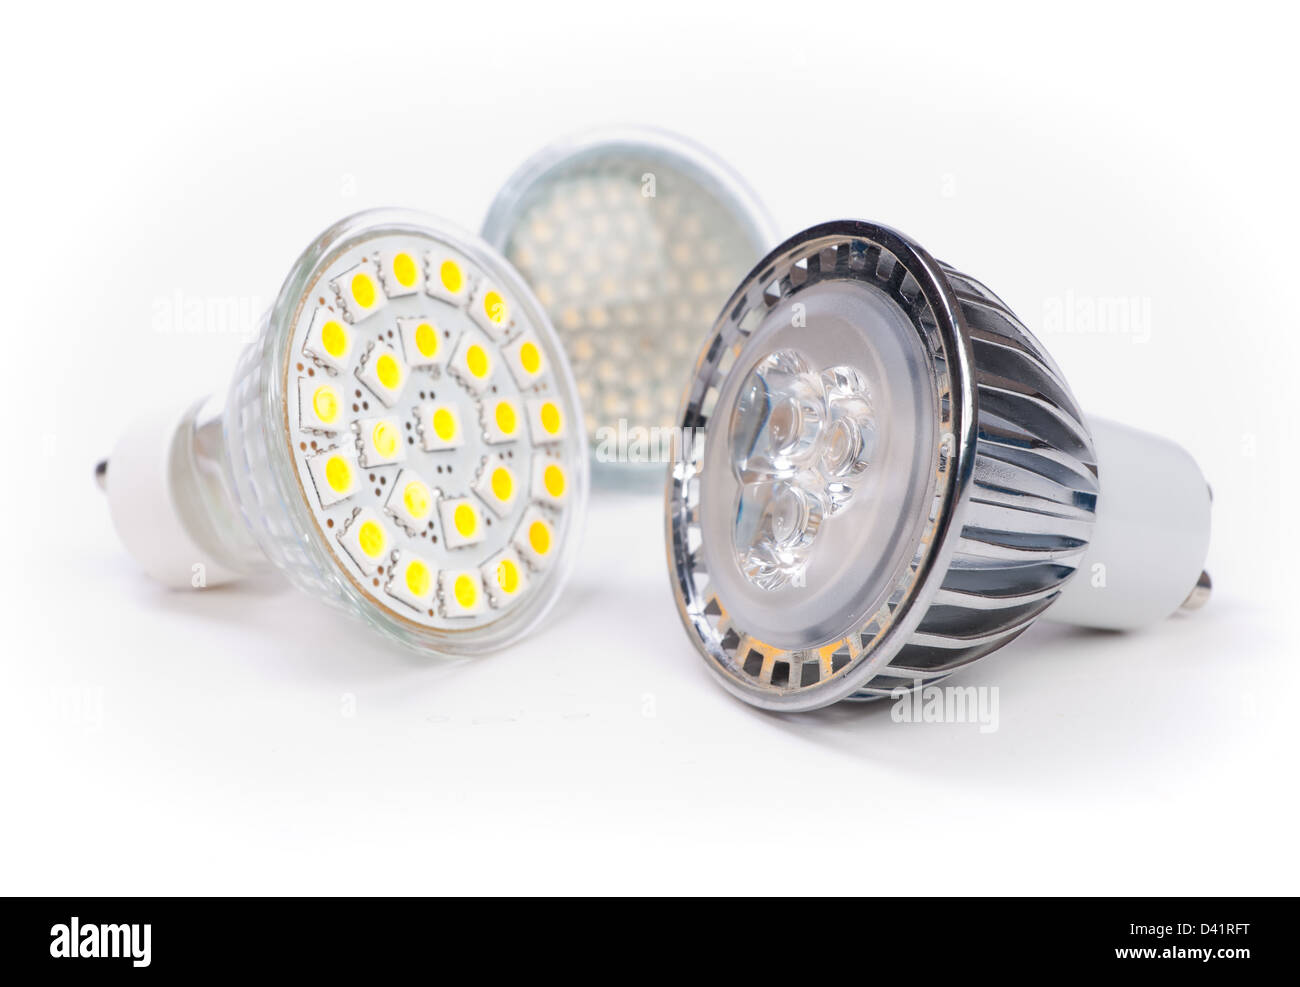 led lamps - Stock Image